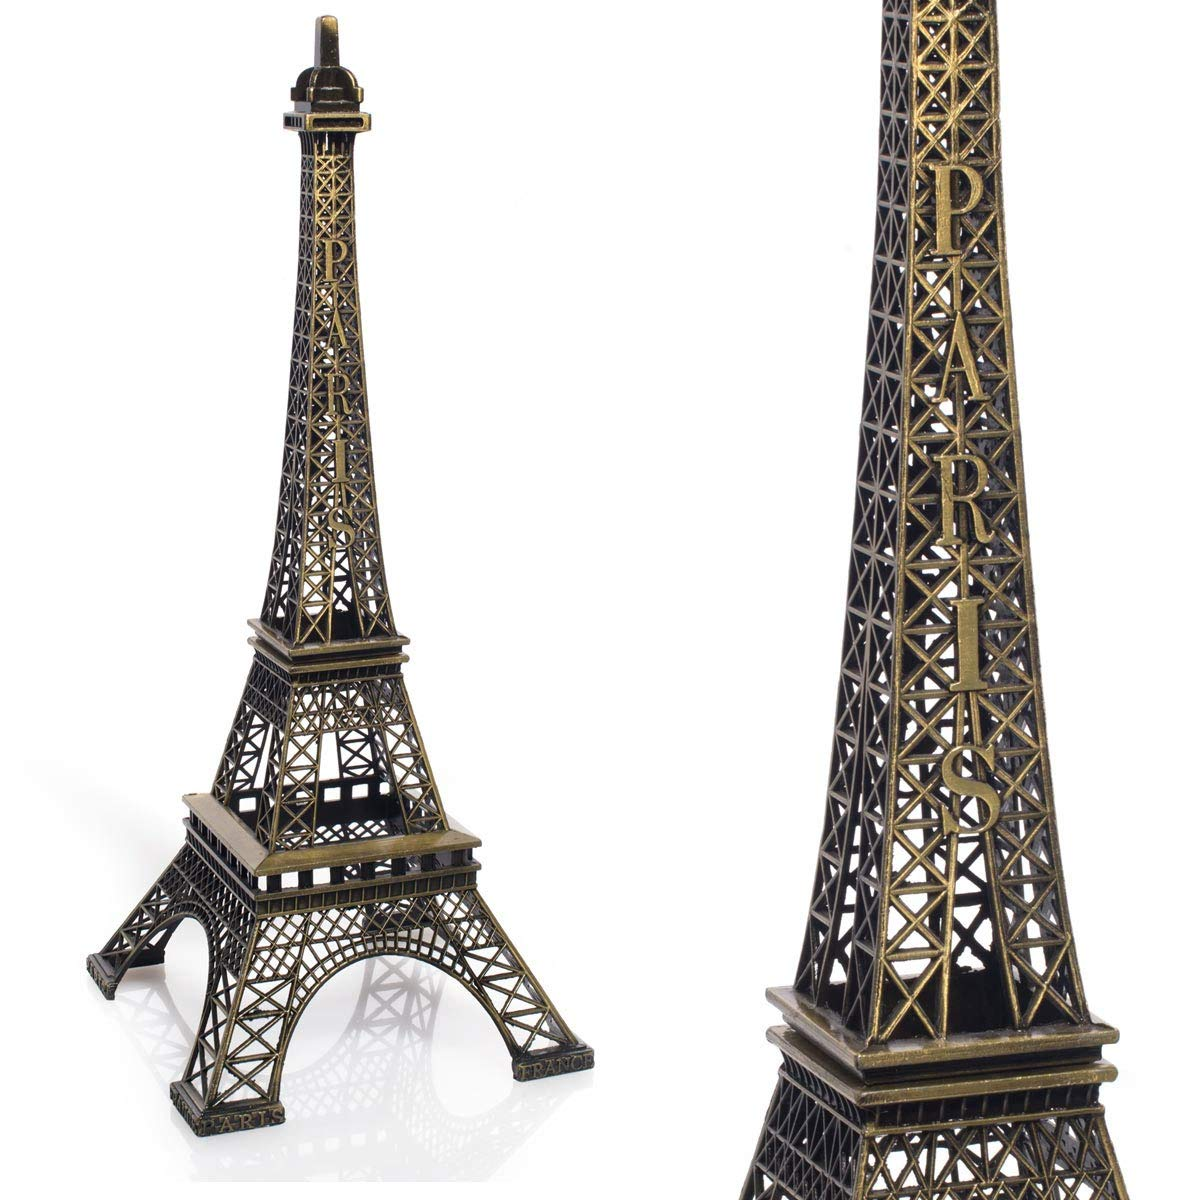 TCDesignerProducts Gold Resin Eiffel Tower Centerpiece, 15 Inches High, Paris Themed Table Decoration